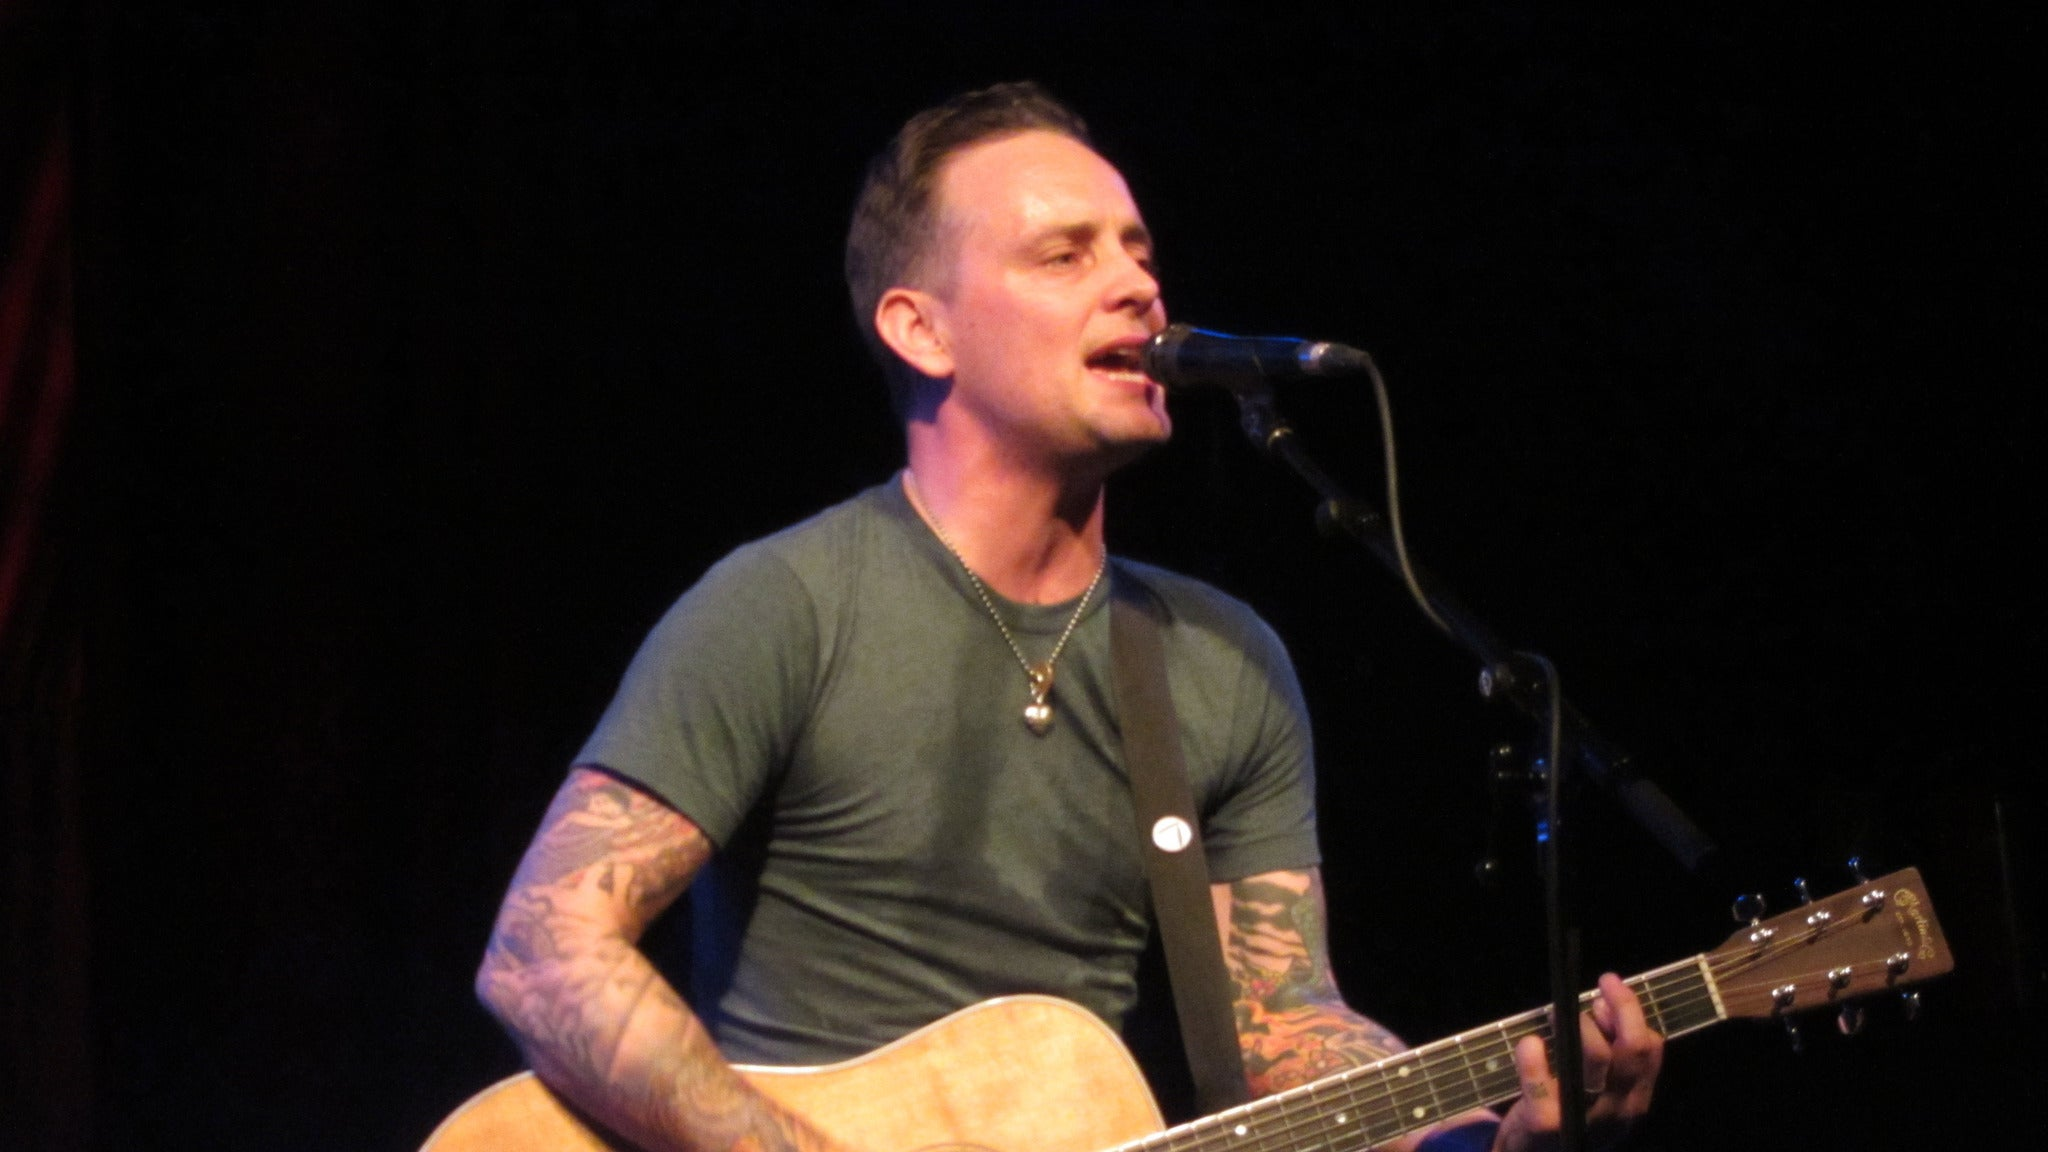 Dave Hause at The Queen